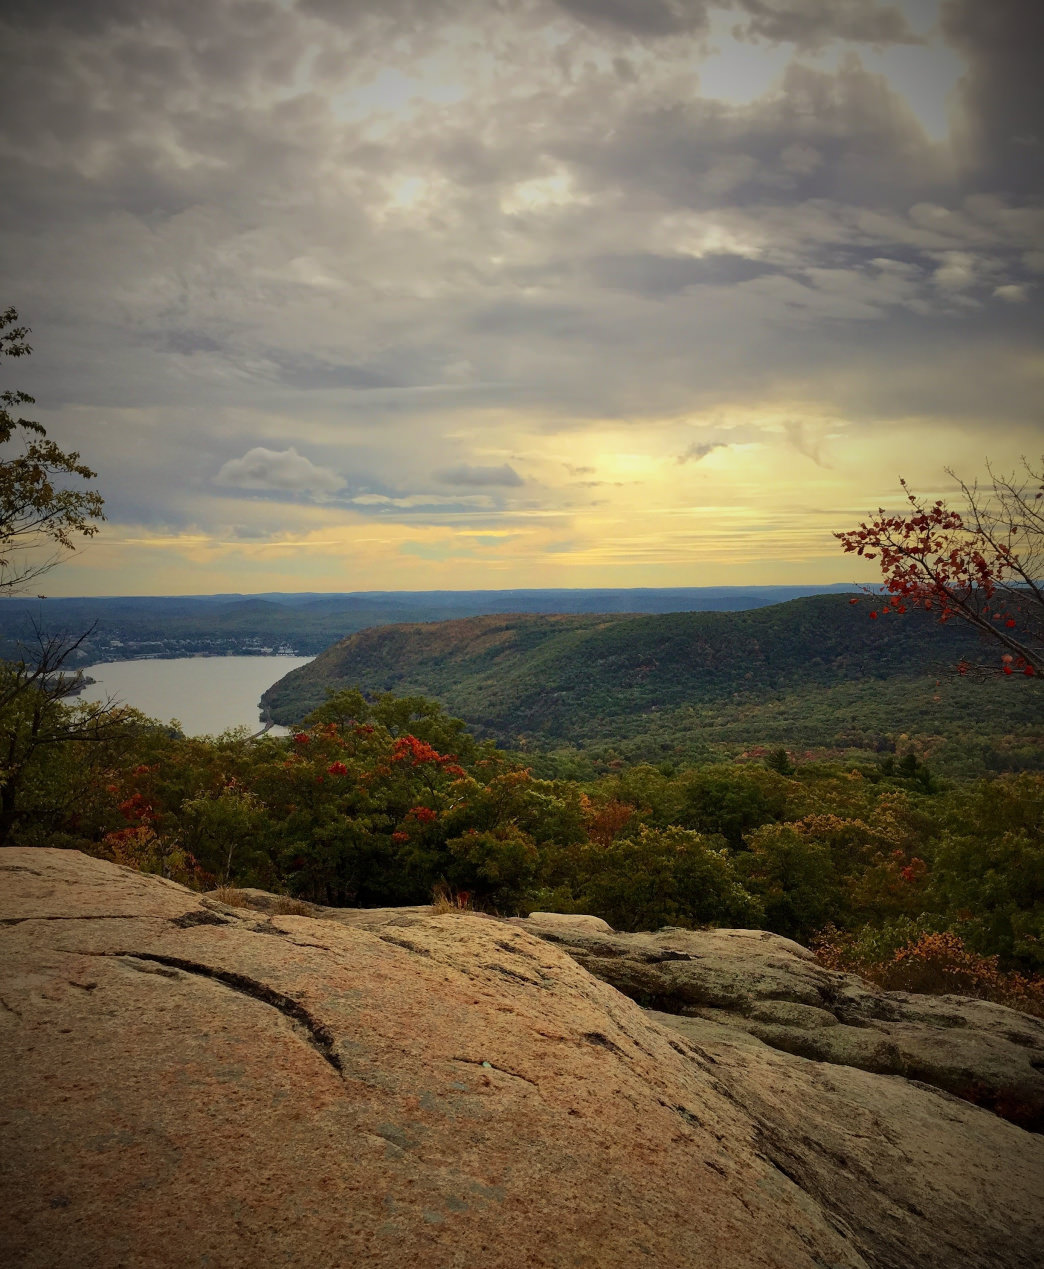 The view from Perkins Tower at Bear Mountain State Park